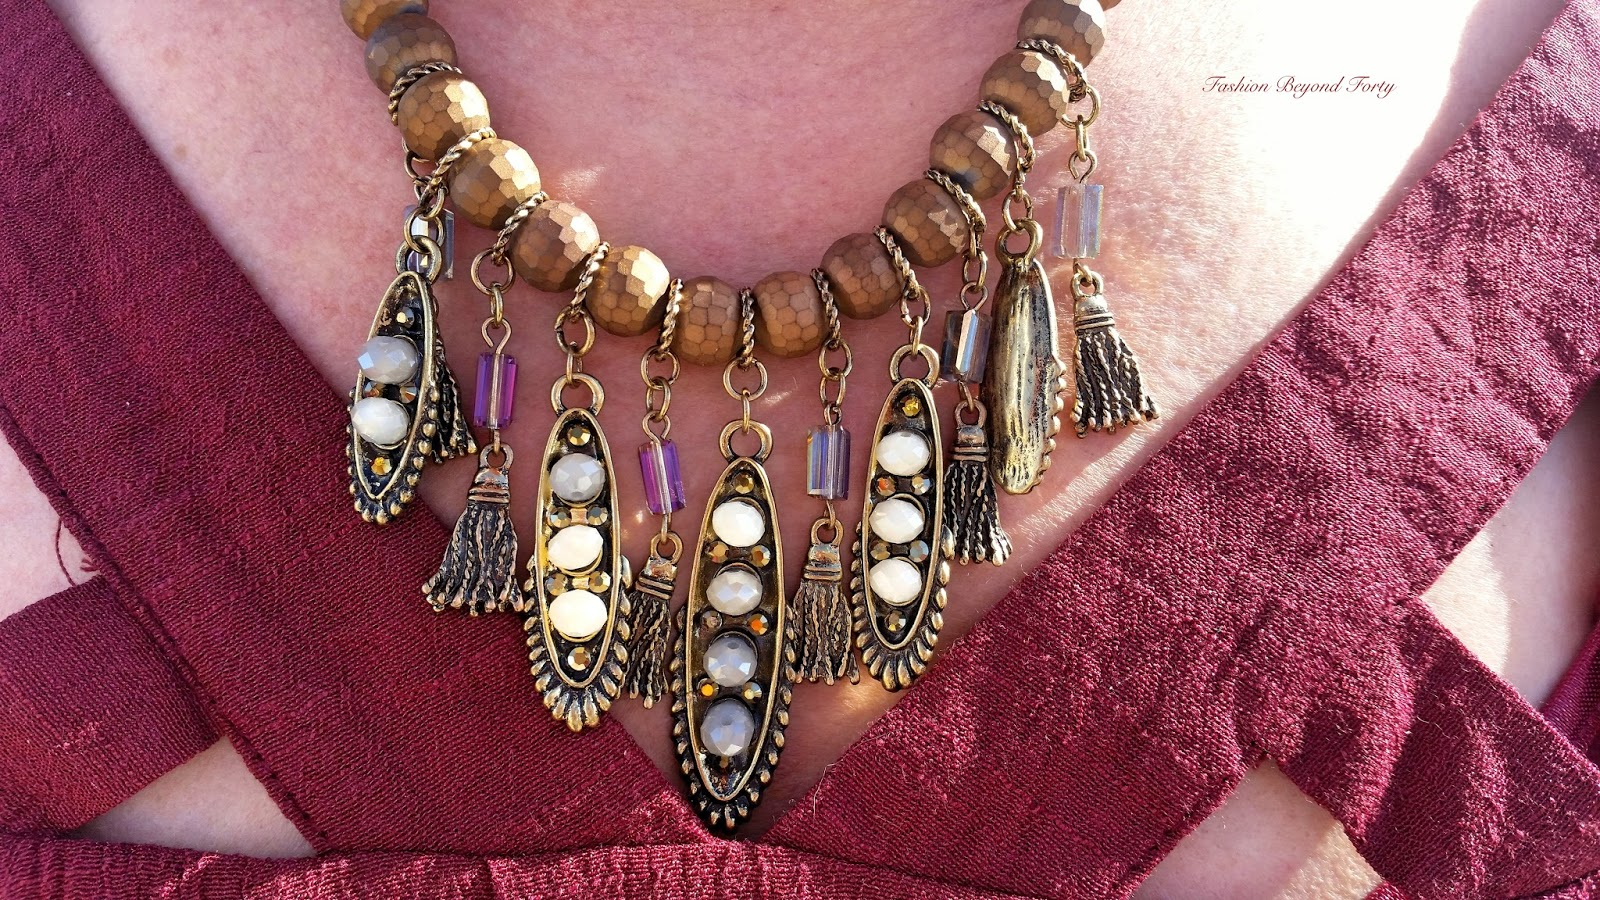 PinkBlush Brown Beaded Fringe Necklace / Earrings Set